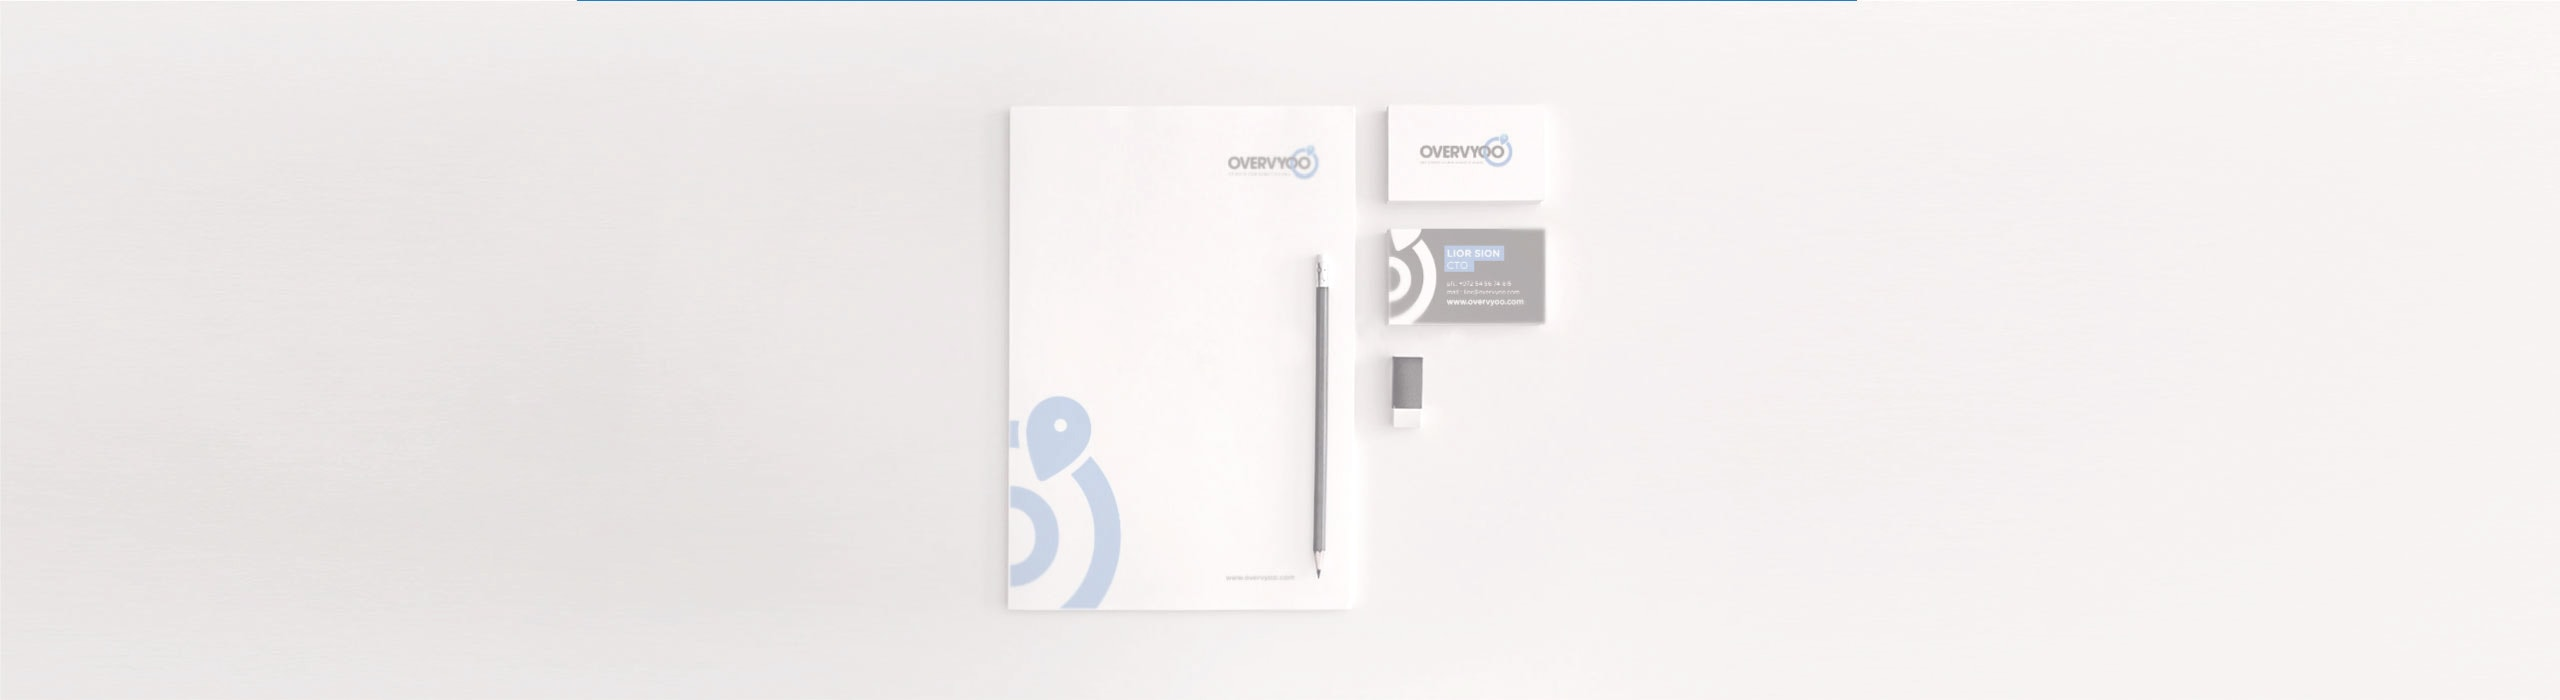 Overvyoo - natie-overvyoo-stationary-design - Natie Branding Agency